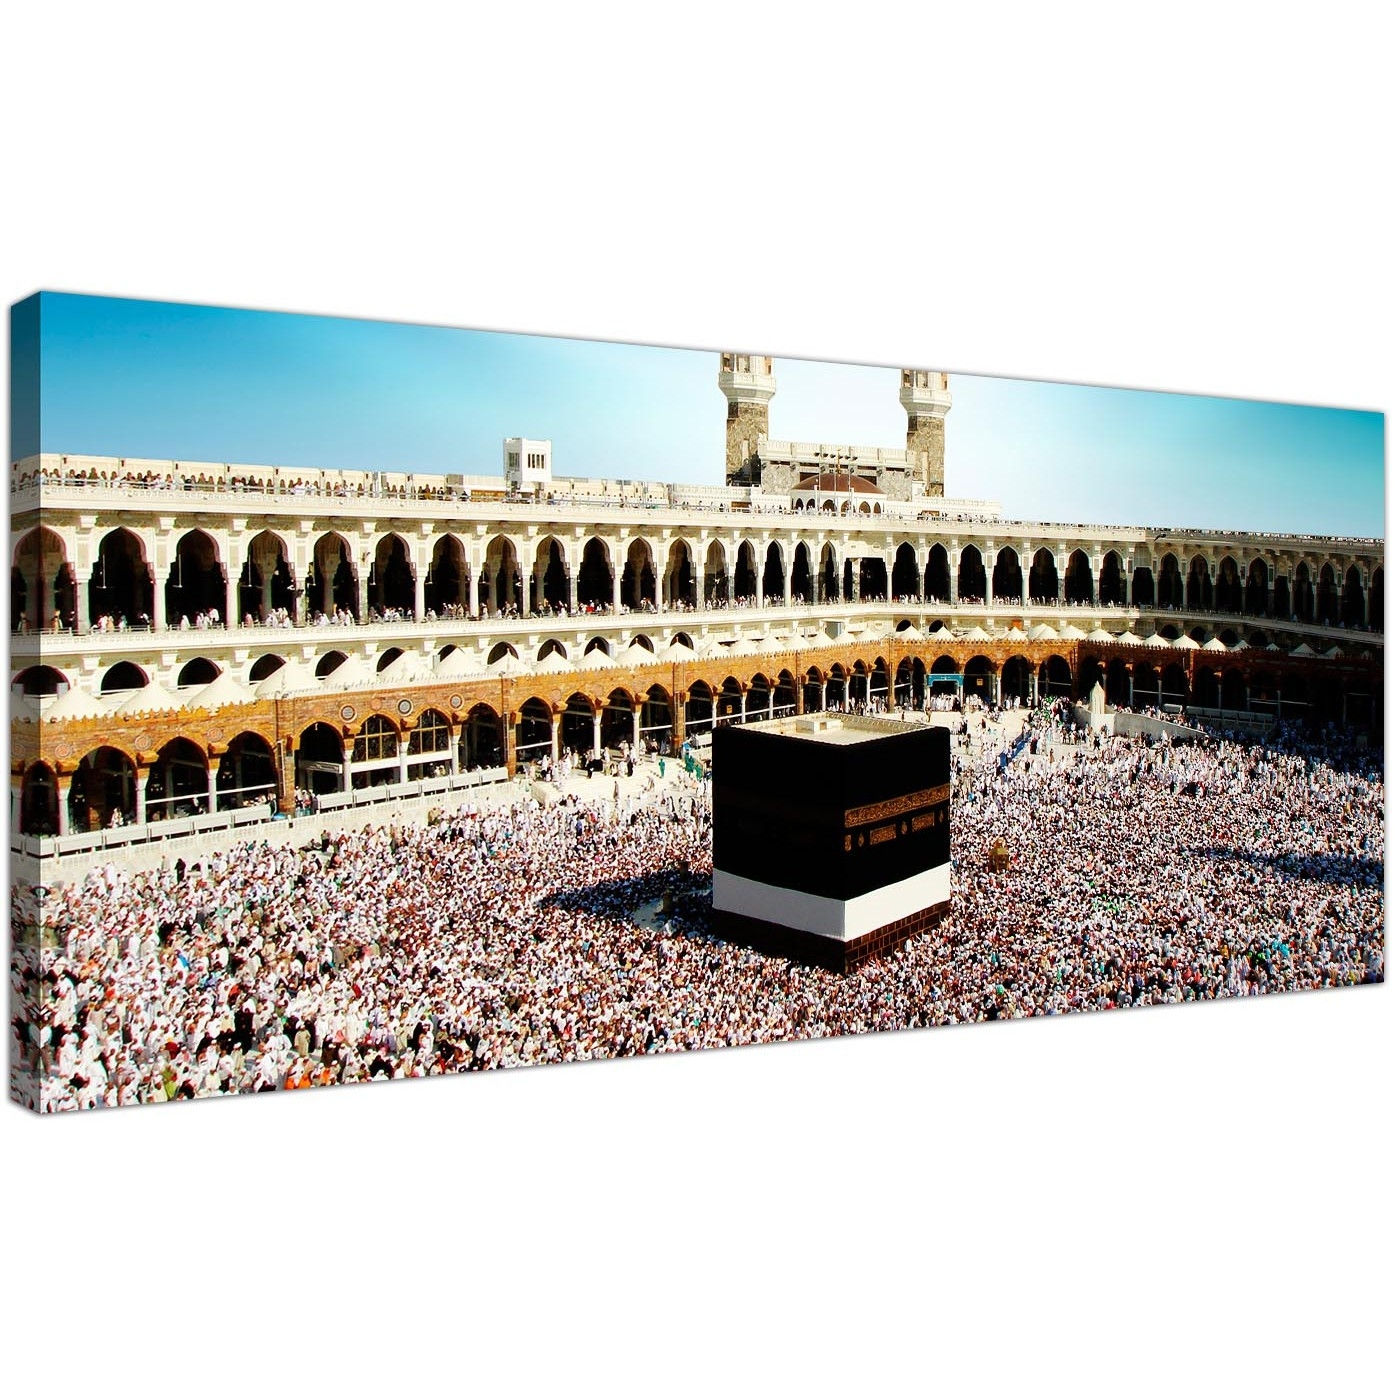 Cheap Islamic Canvas Wall Art Prints Of Muslim Pilgrimage To Mecca Intended For 2018 Islamic Canvas Wall Art (View 4 of 15)